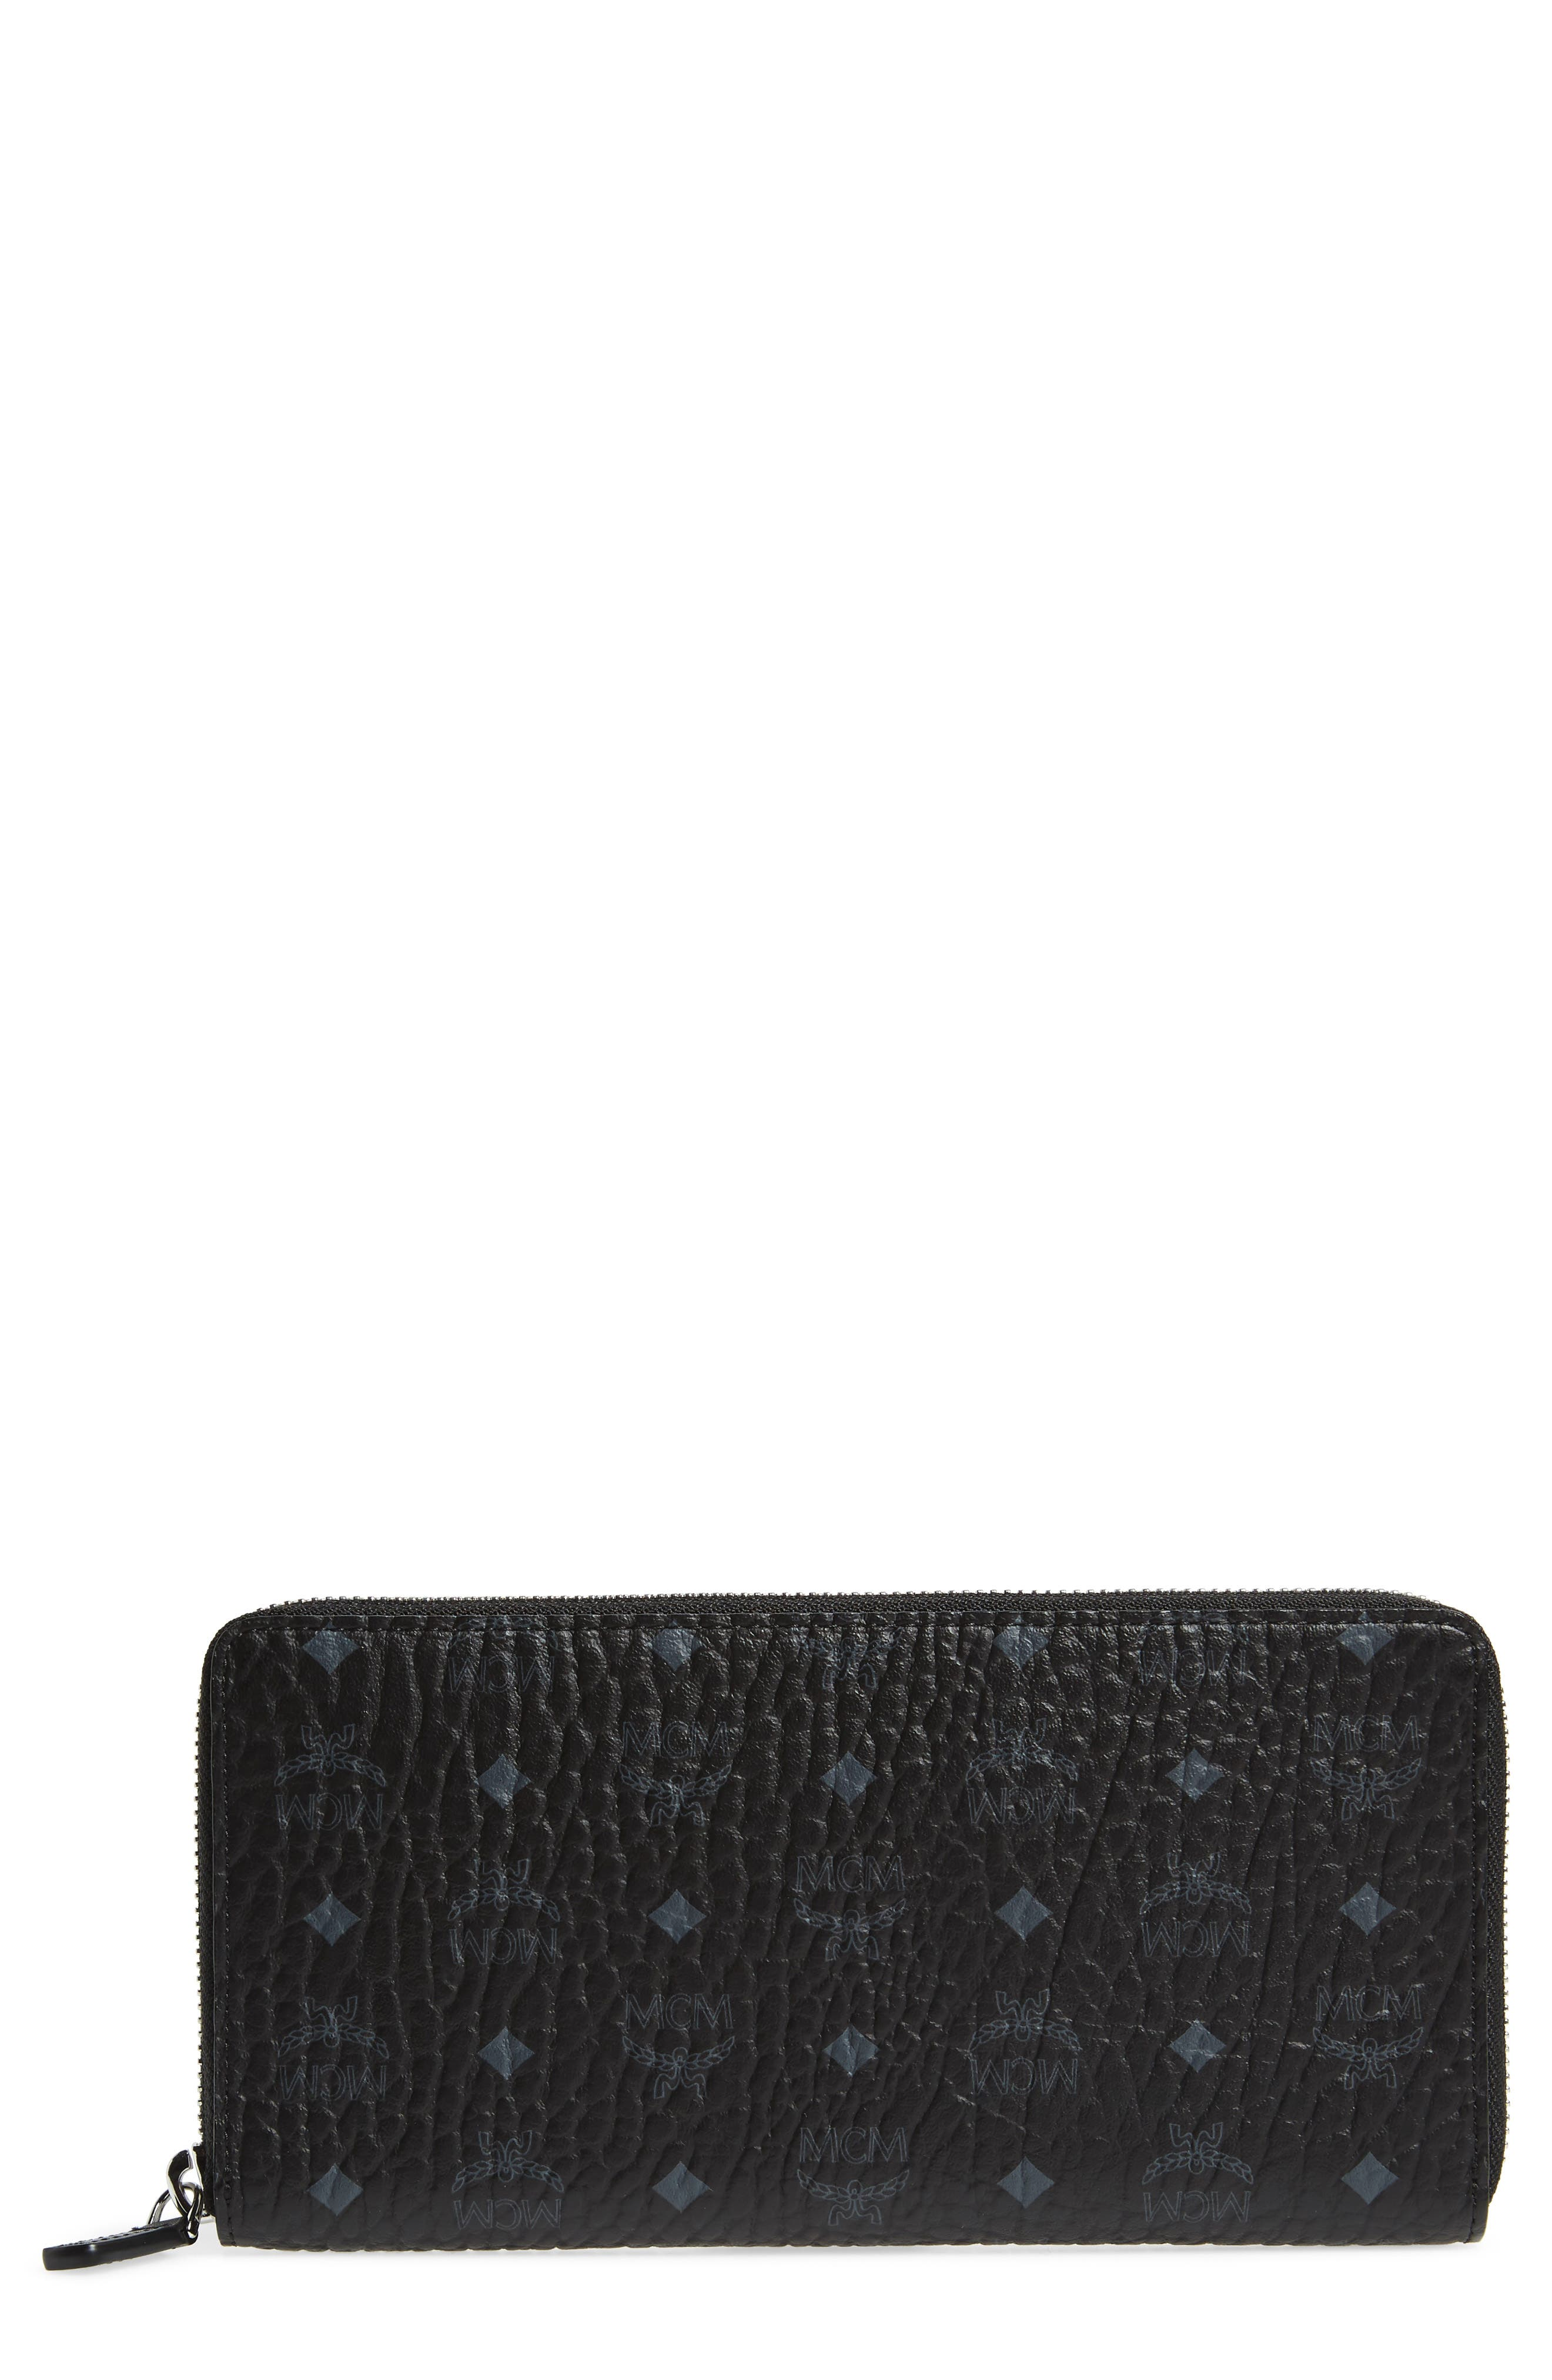 Visetos Original Zip Around Coated Canvas Wallet,                         Main,                         color, BLACK